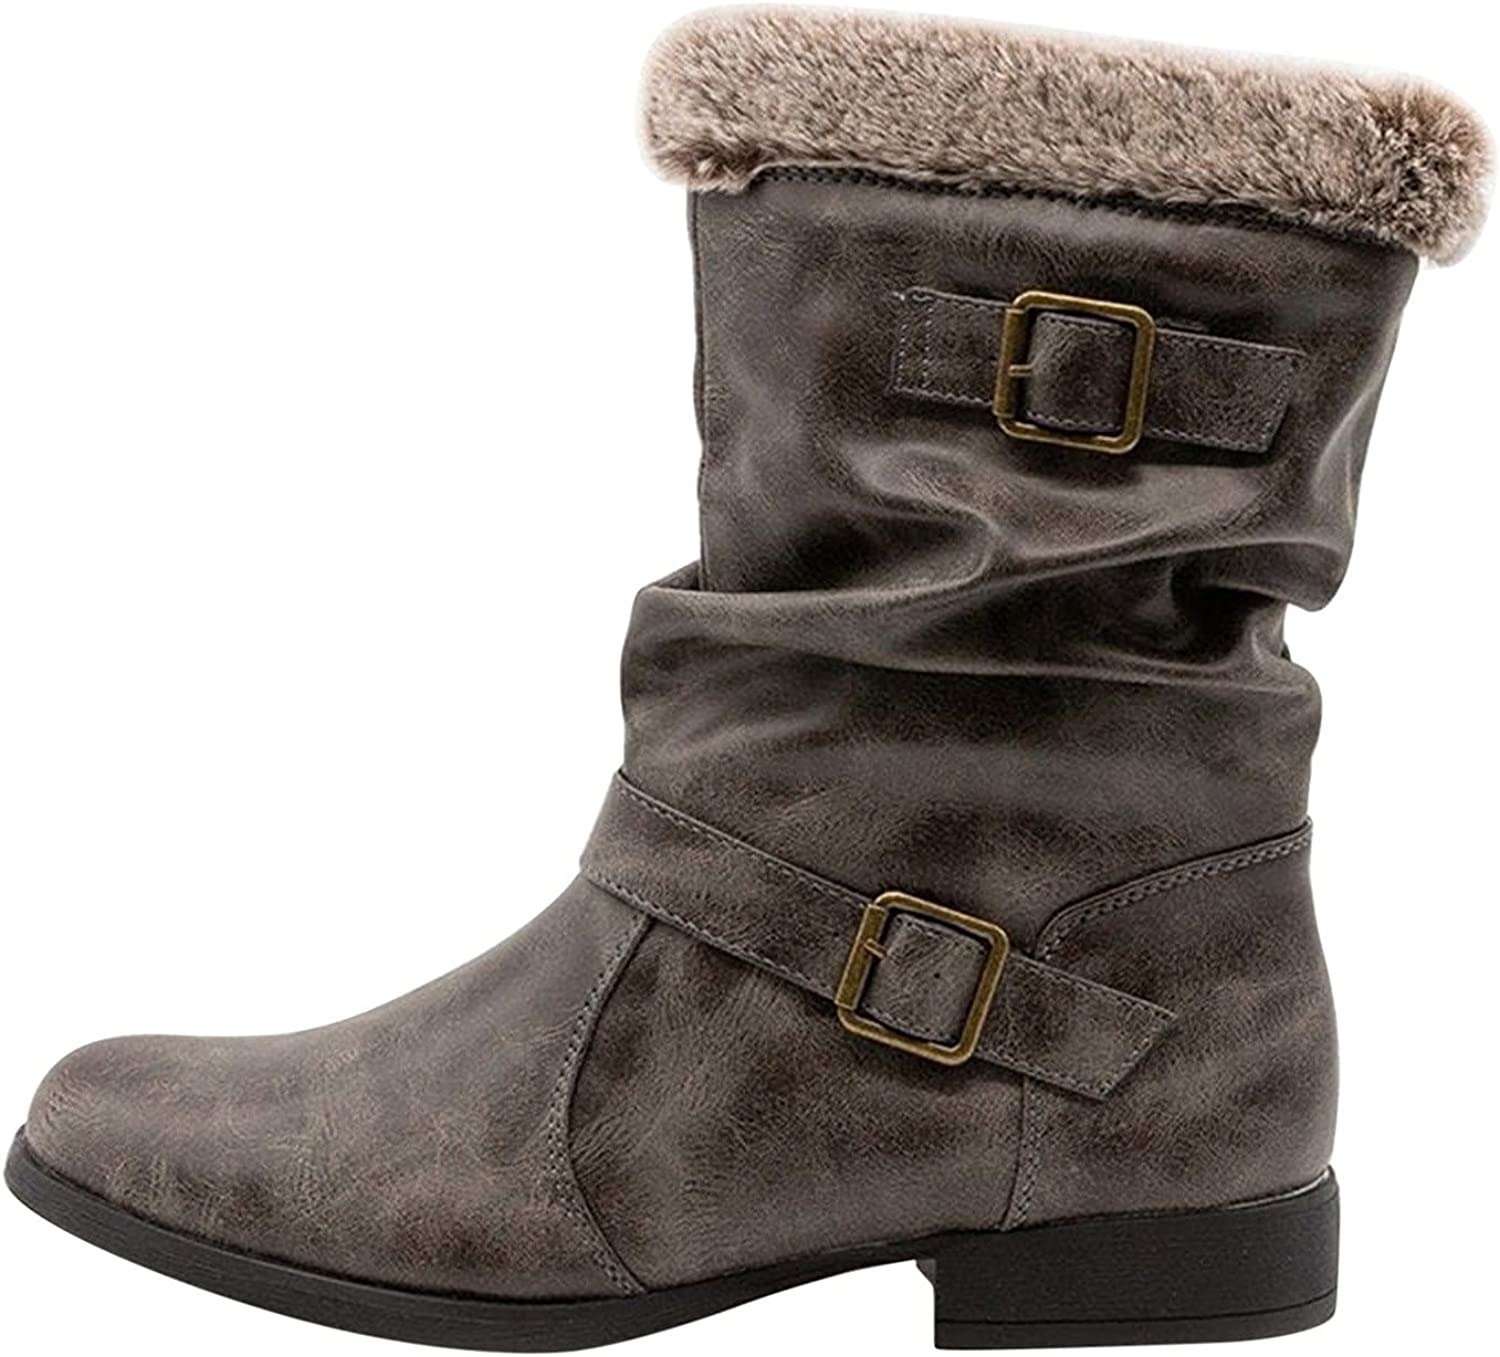 Winter Boots for Women Trendy Soft Wedge Mid Tube Plush Cotton B